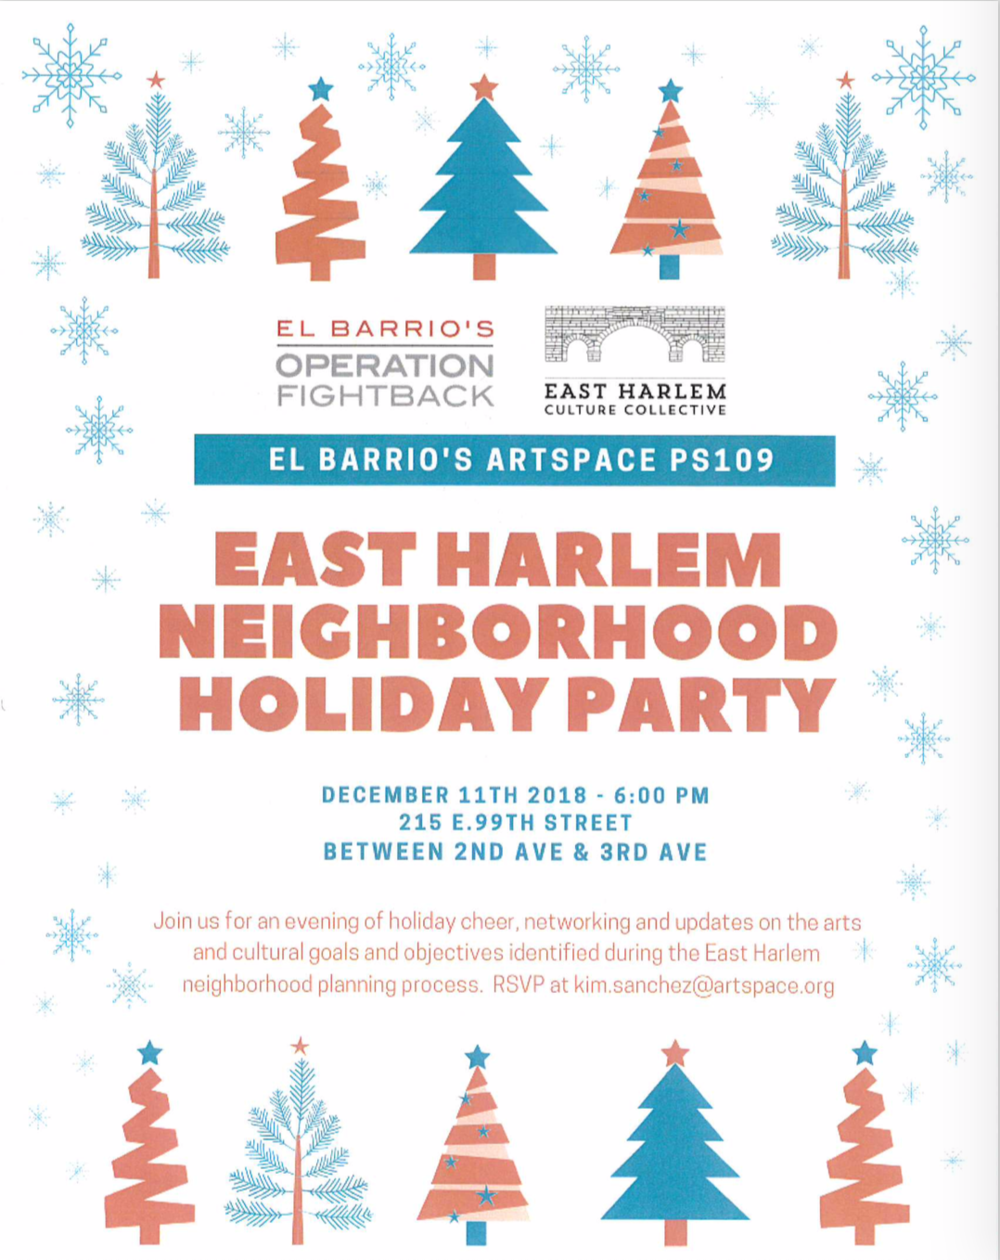 East Harlem Neighborhood Holiday Party